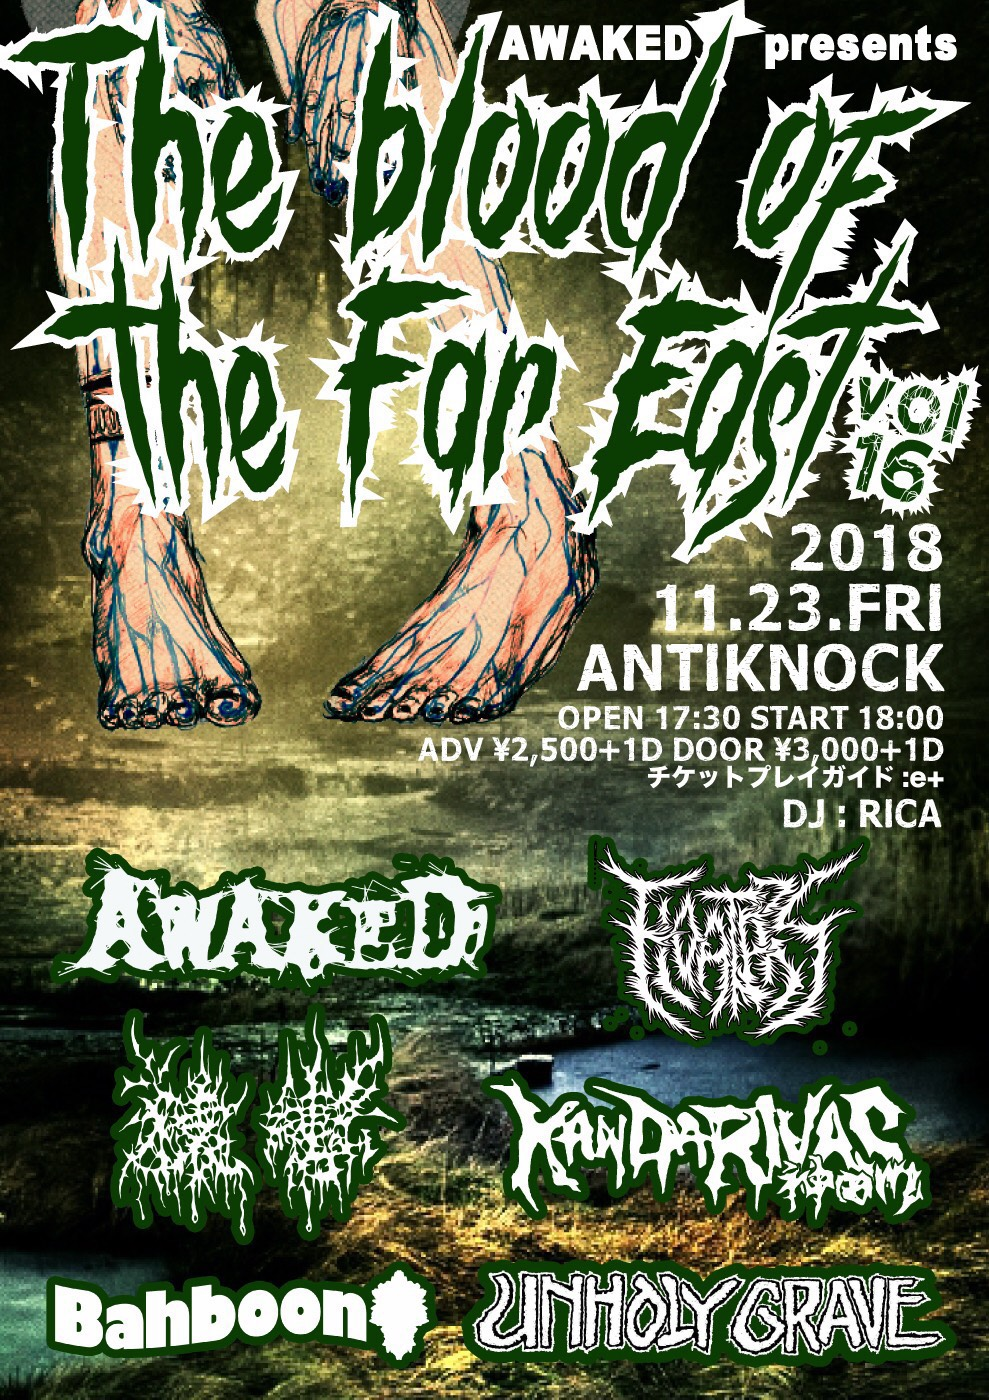 AWAKED presents 【The blood of the Far East vol.16】